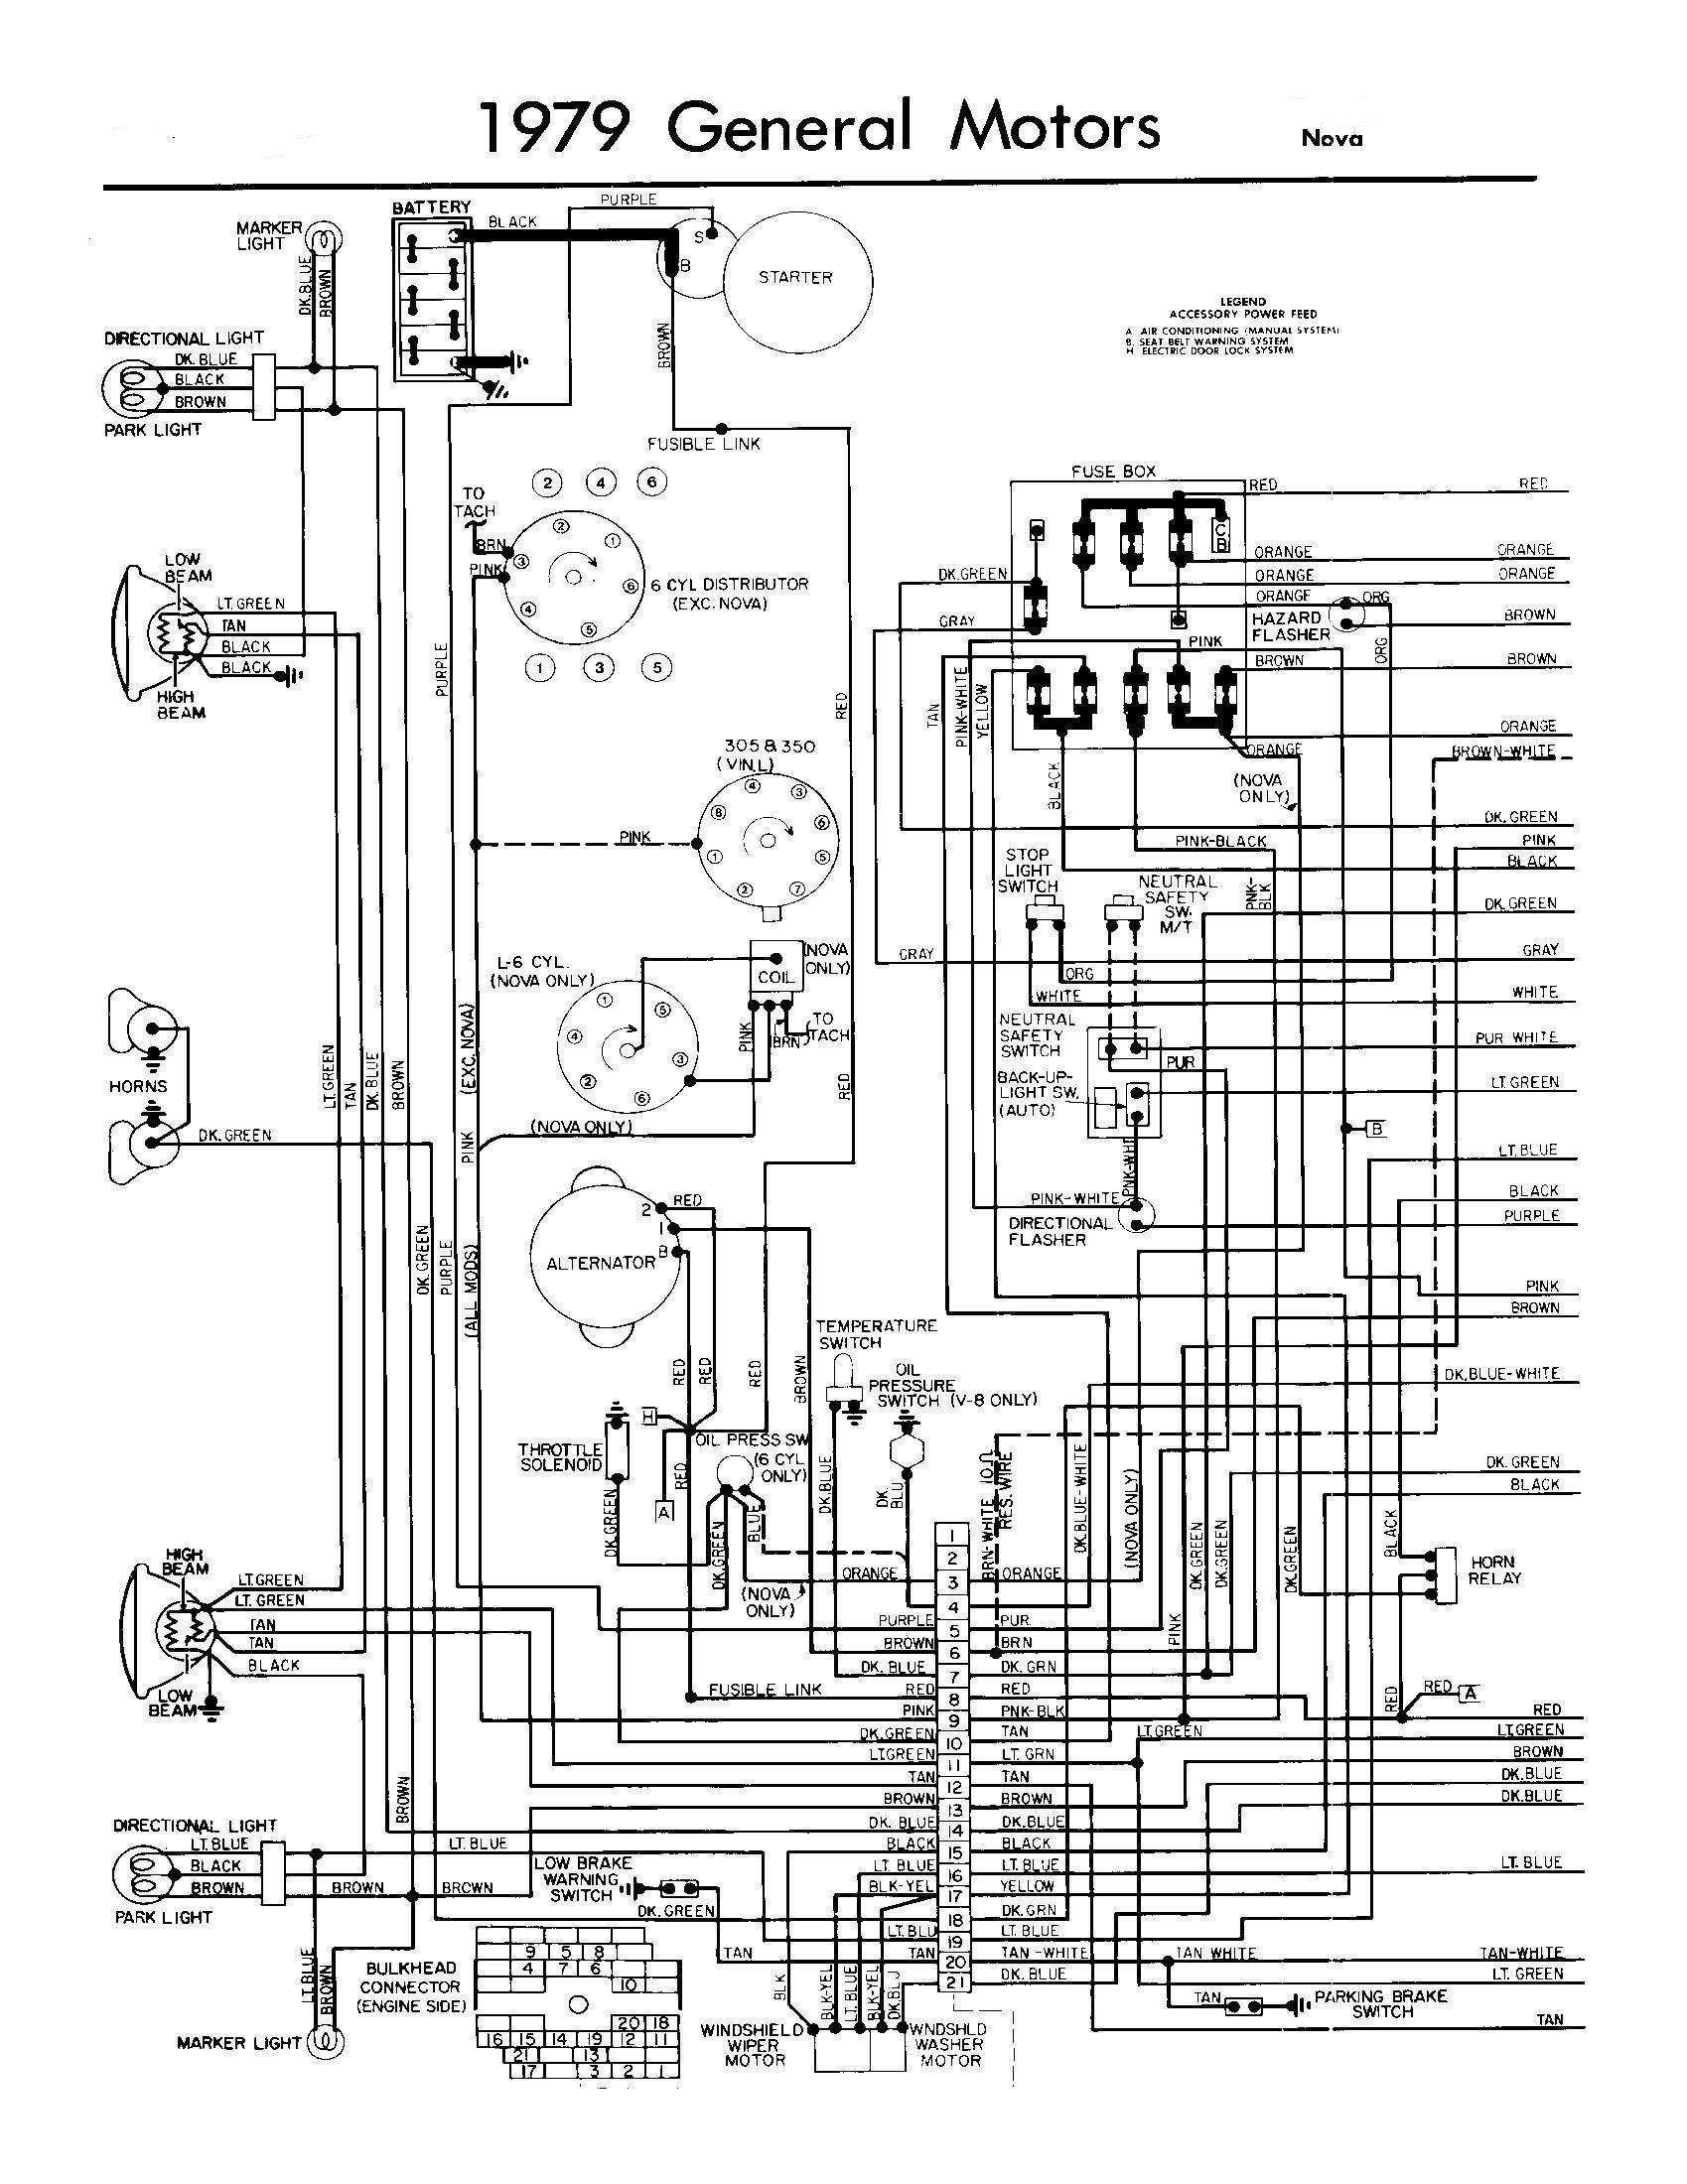 743 Bobcat Hydraulic Diagram Starting Know About Wiring Diagram \u2022  Bobcat 743B Wiring Diagram Bobcat 743 Wiring Diagram